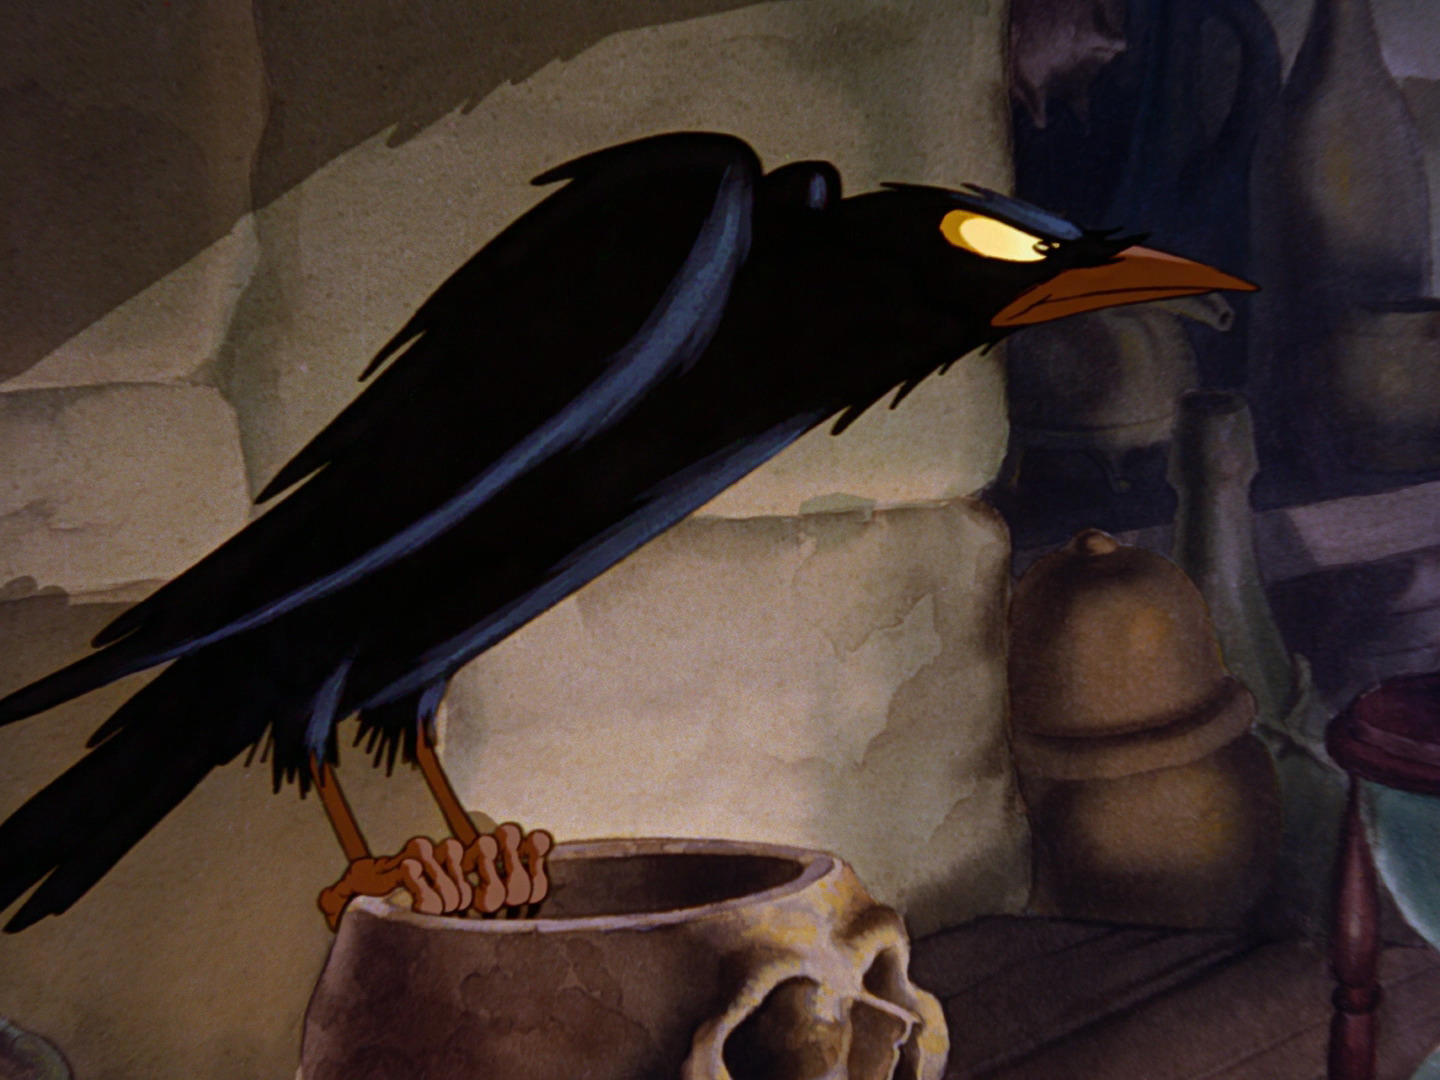 Raven (Snow White and the Seven Dwarfs)